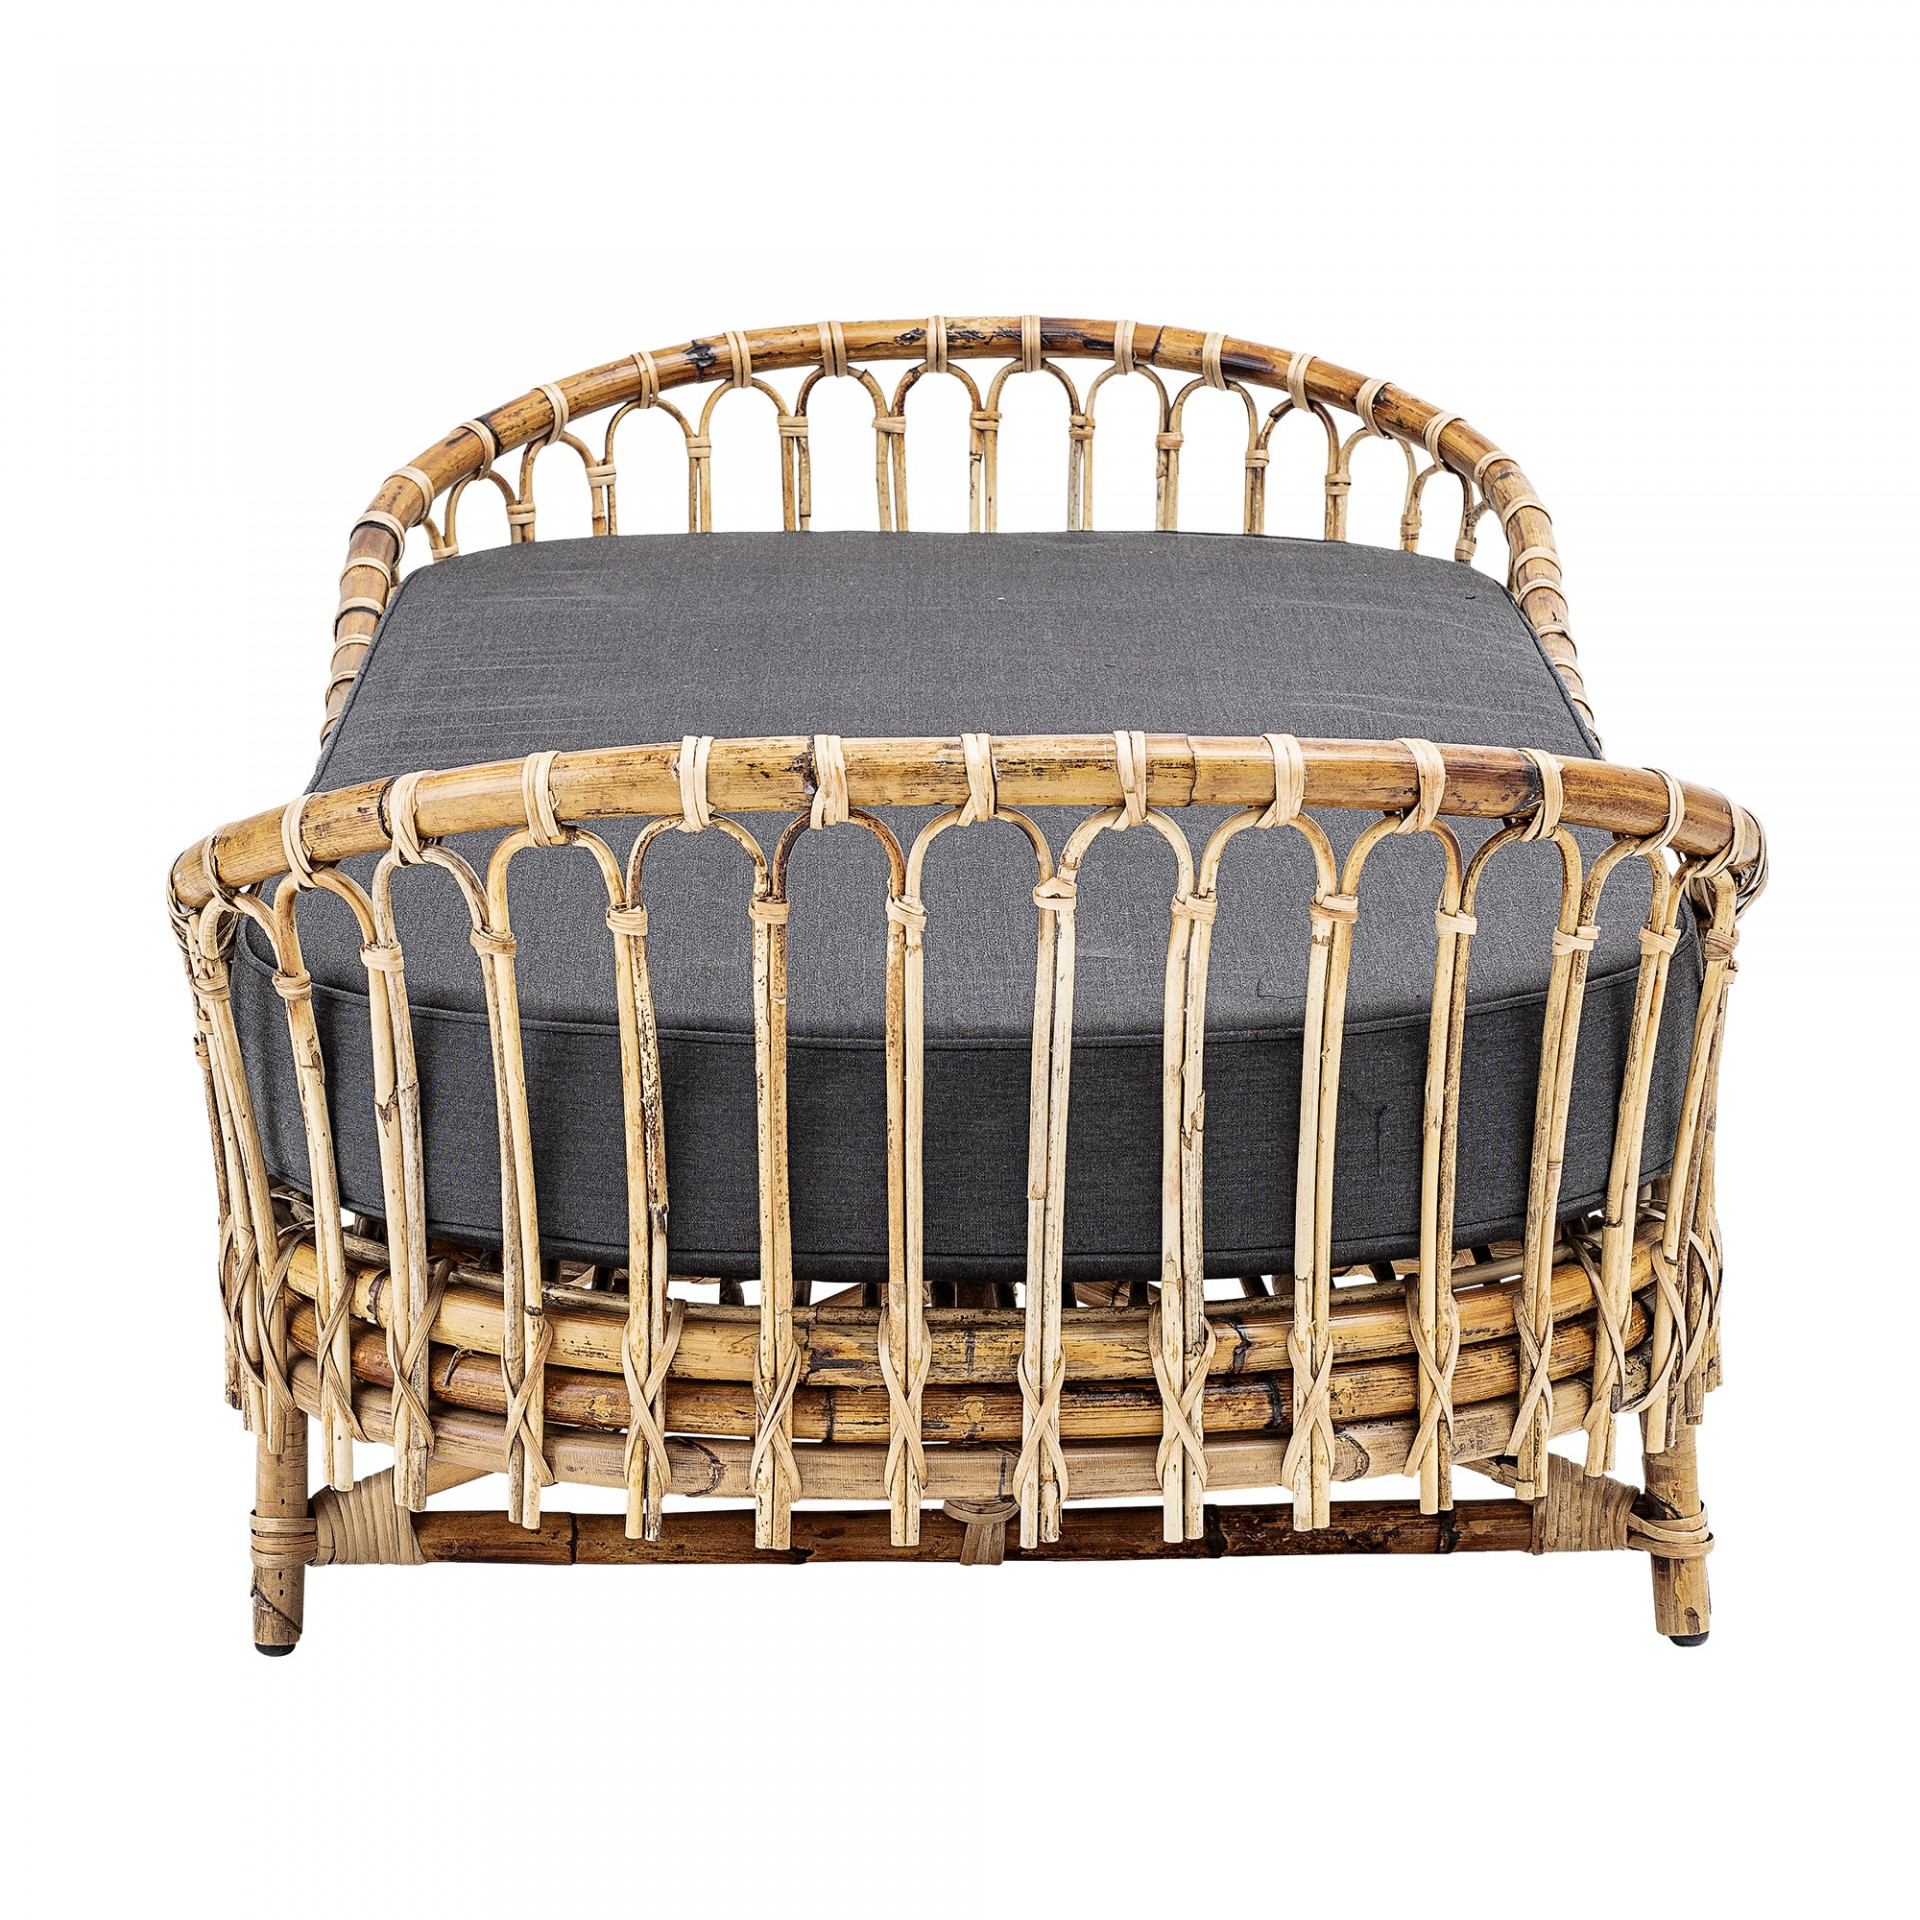 Sofá-cama Madison, rattan natural, 80x185 cm